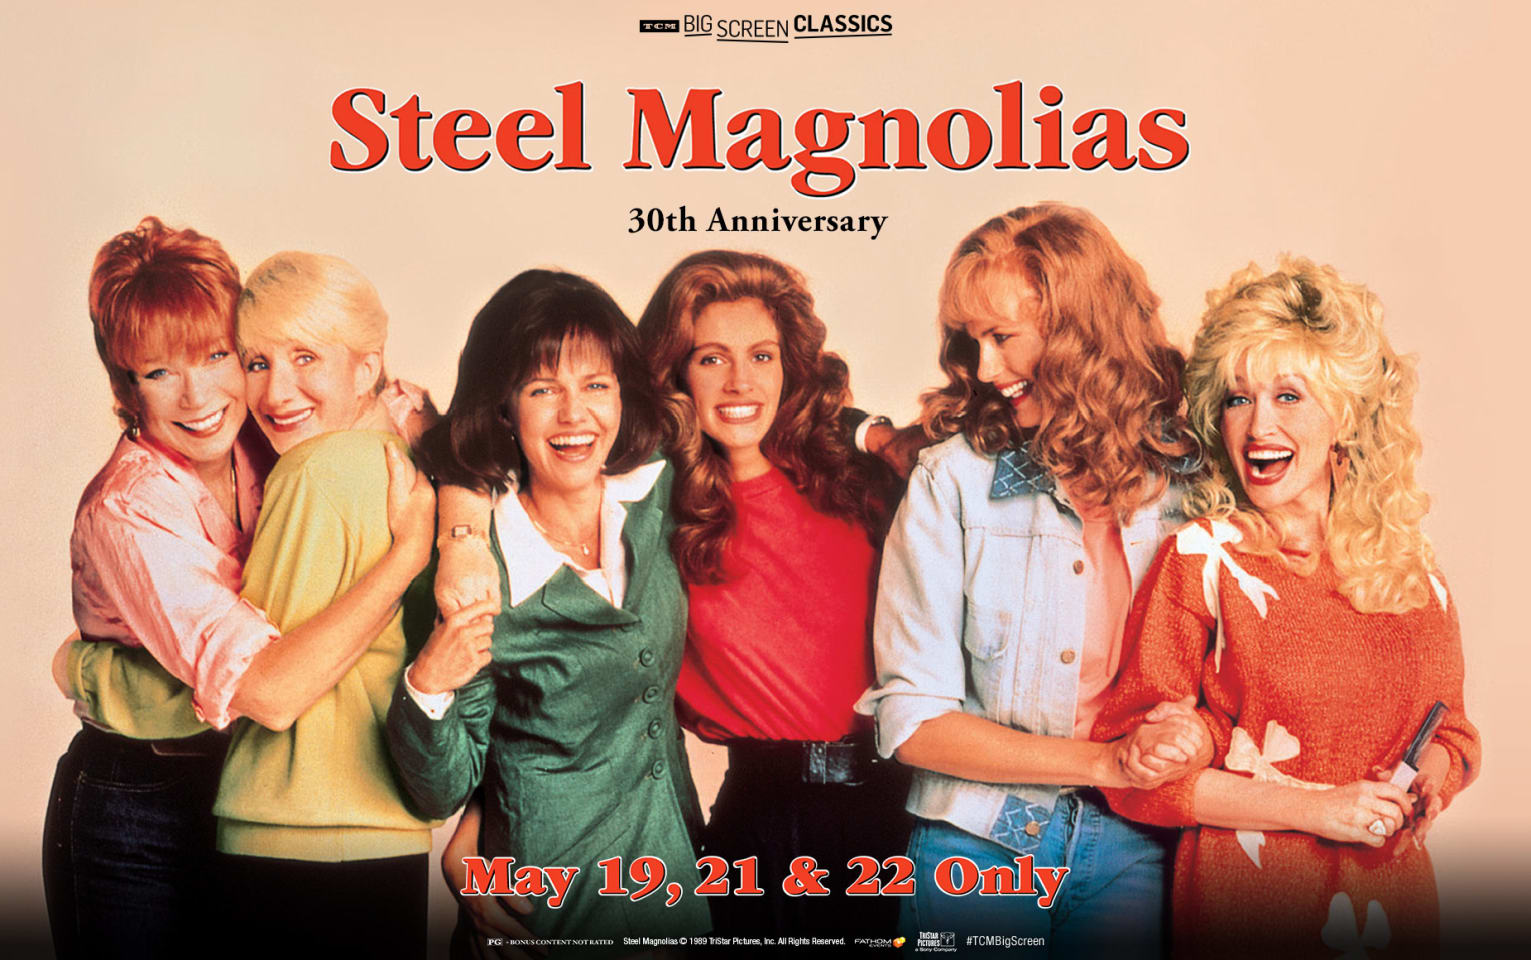 Steel Magnolias 30th Anniversary (1989) presented by TCM Poster 1